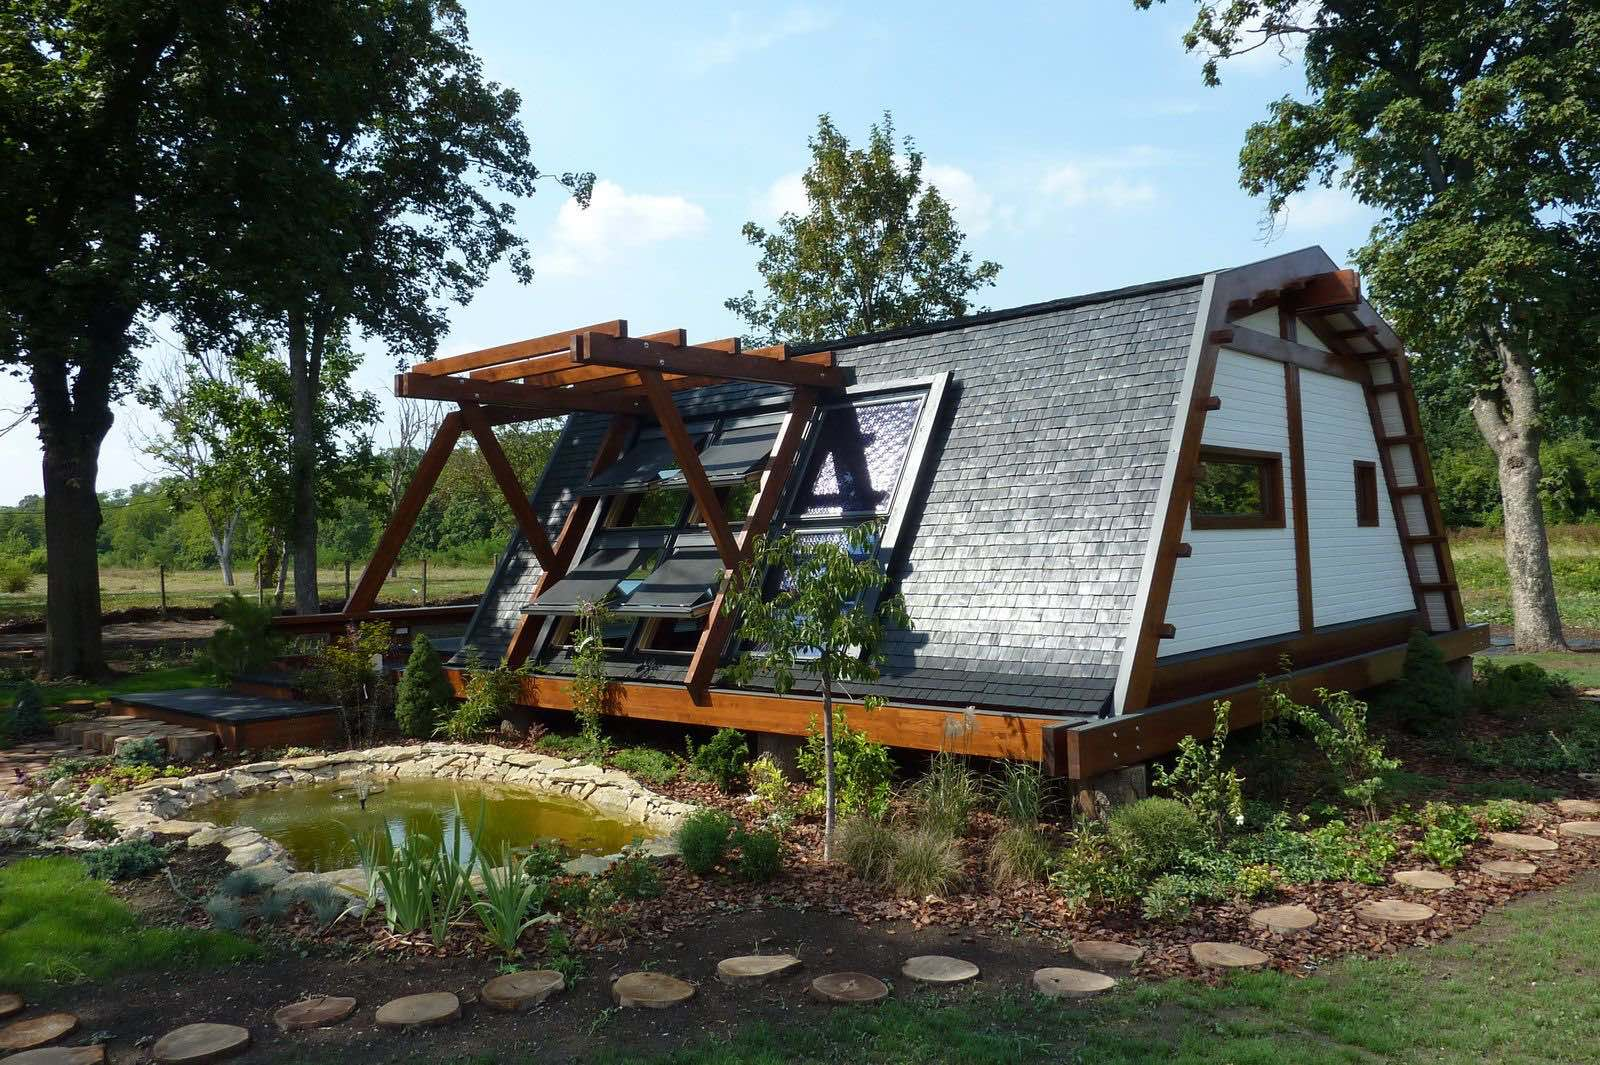 Soleta ZeroEnergy One By FITS CAANdesign Architecture And Home - Zero energy home design